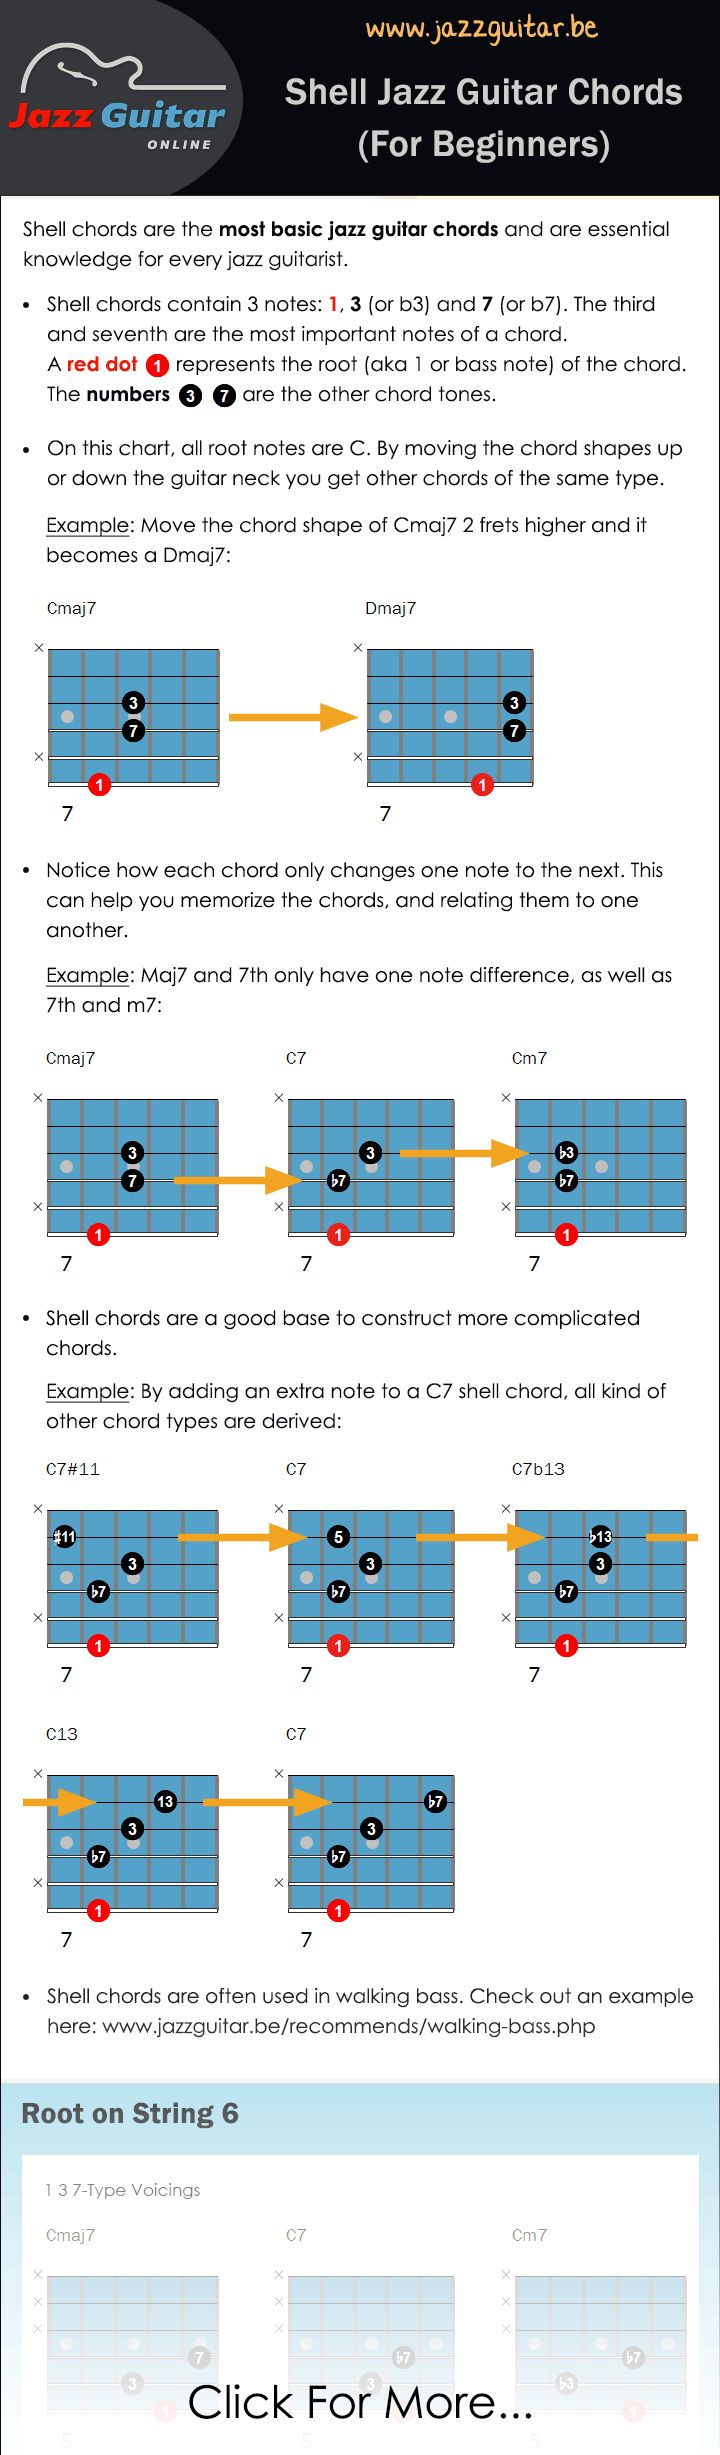 658 best musician images on pinterest music musicians and board shell chords are the most basic jazz guitar chords and are essential knowledge for every jazz hexwebz Choice Image